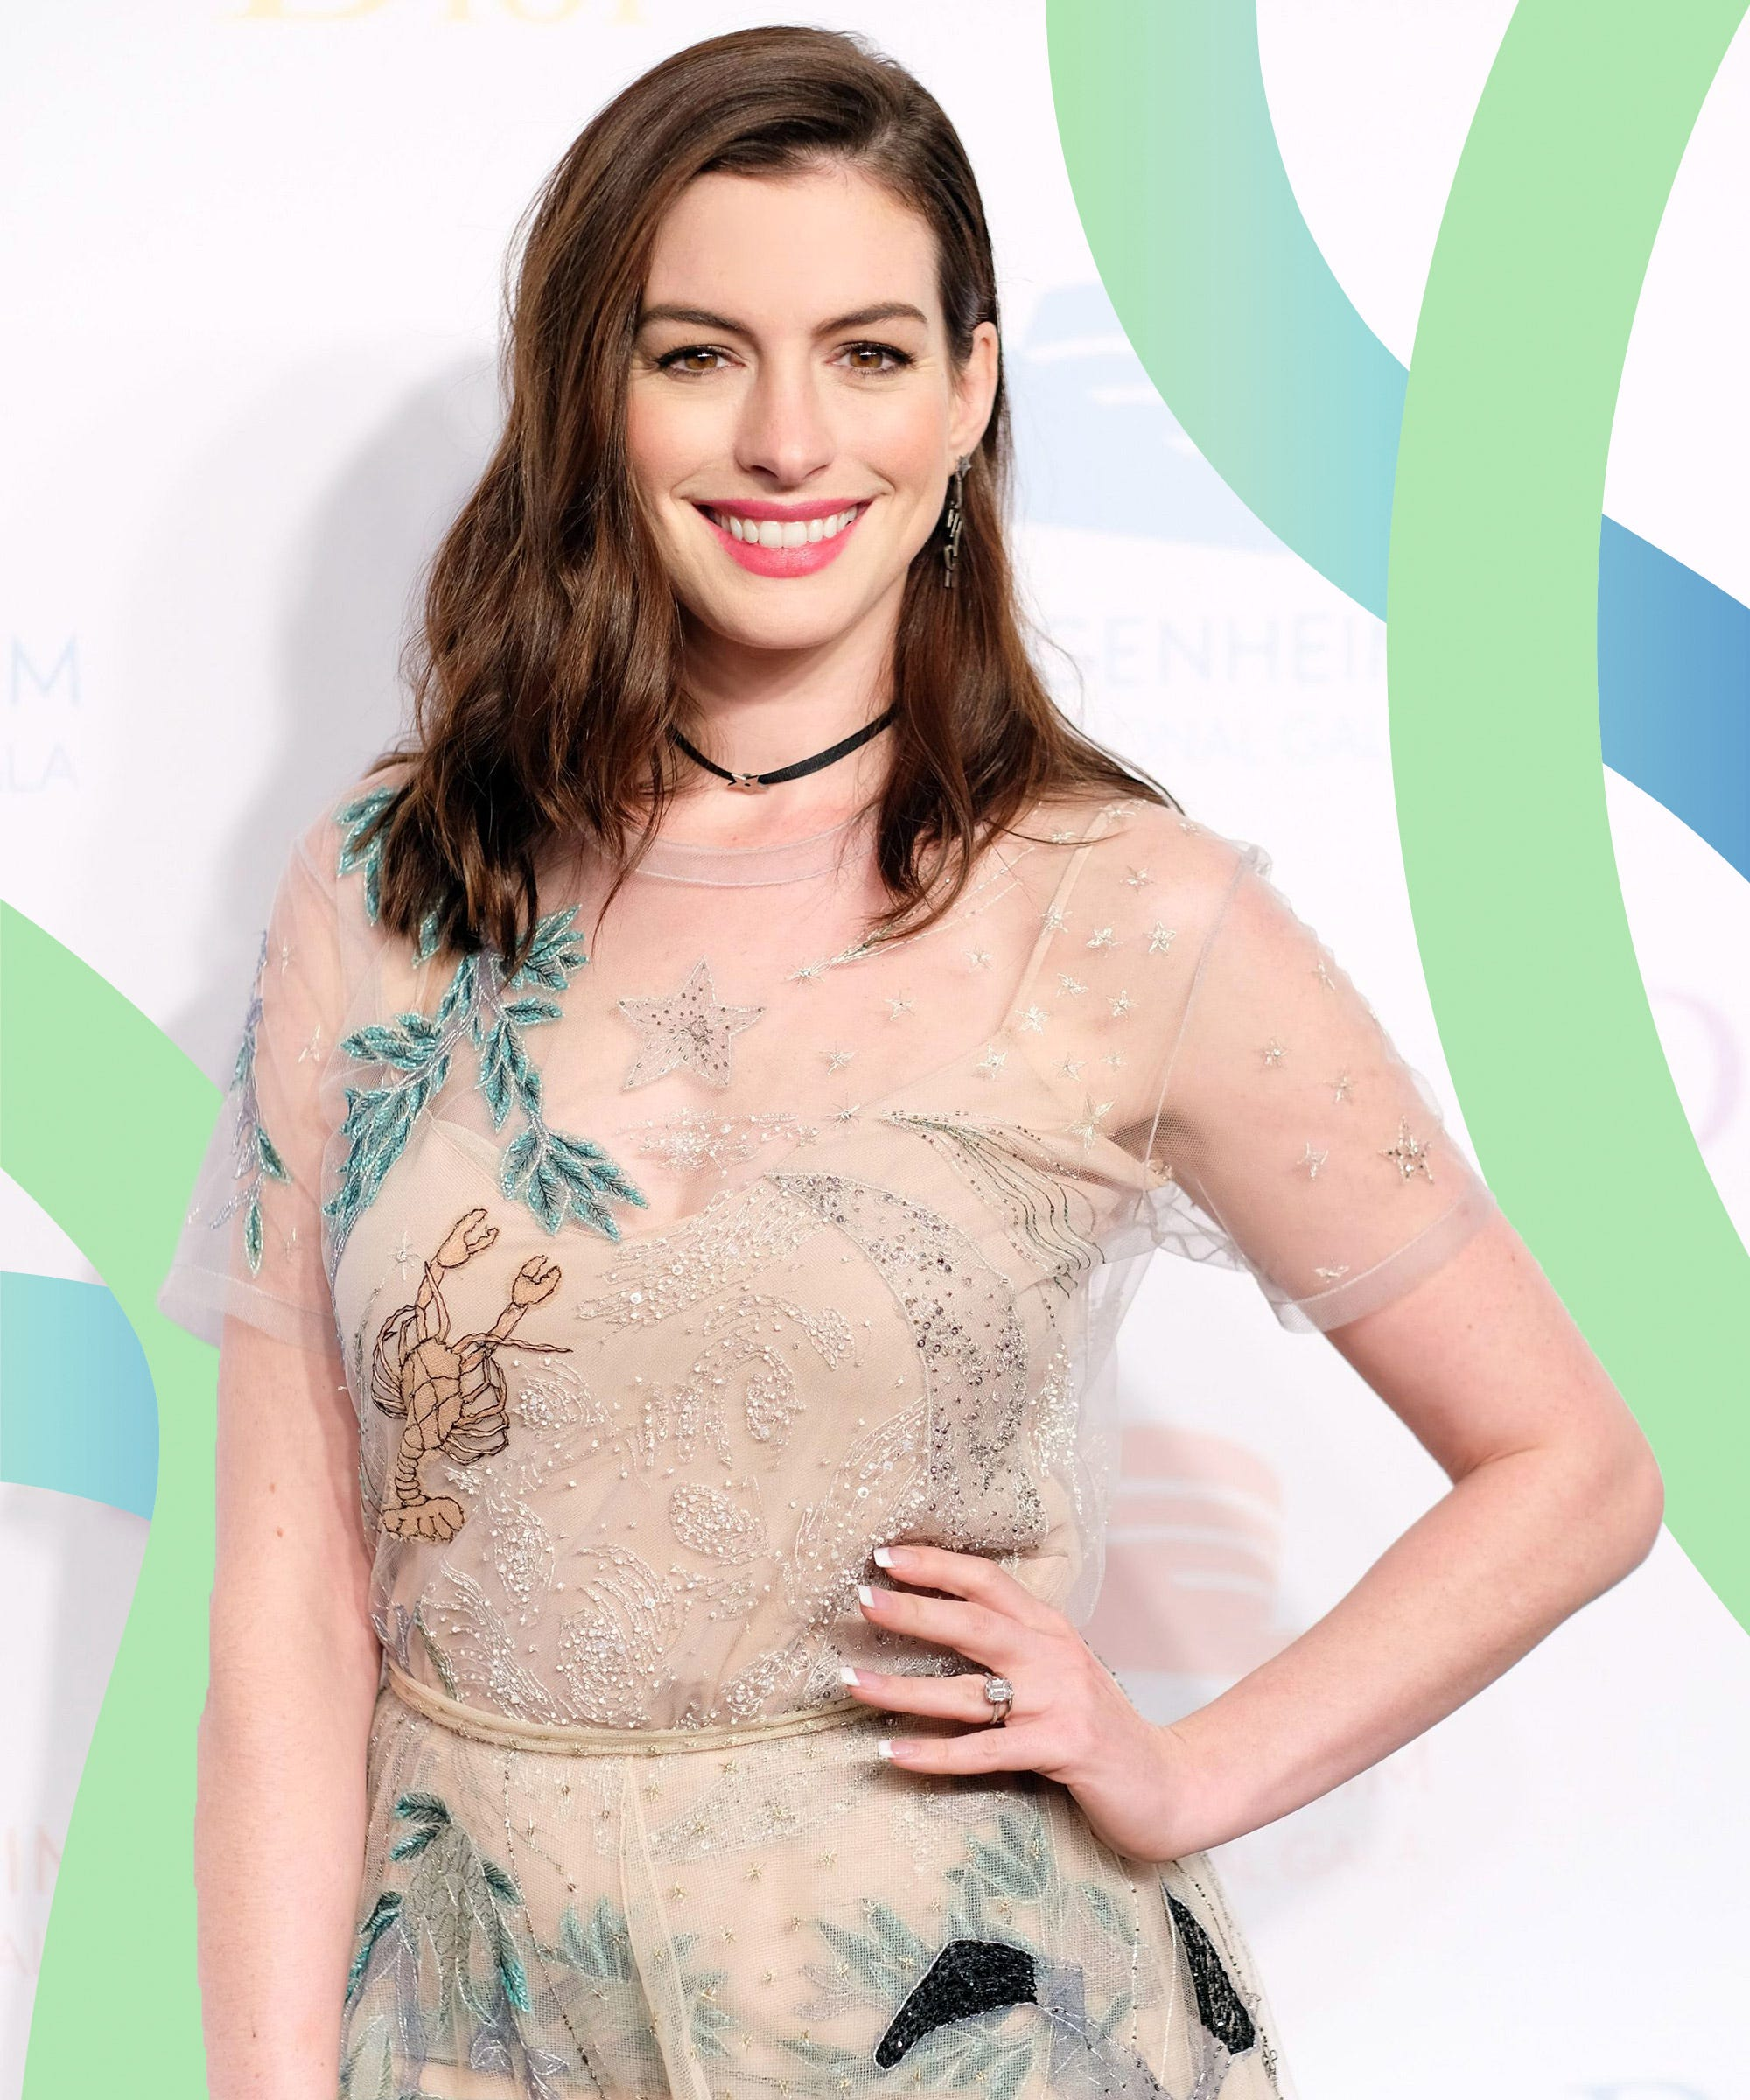 Anne Hathaway Ellen Drinking: Anne Hathaway Disliked Self Alcohol Abuse Interview